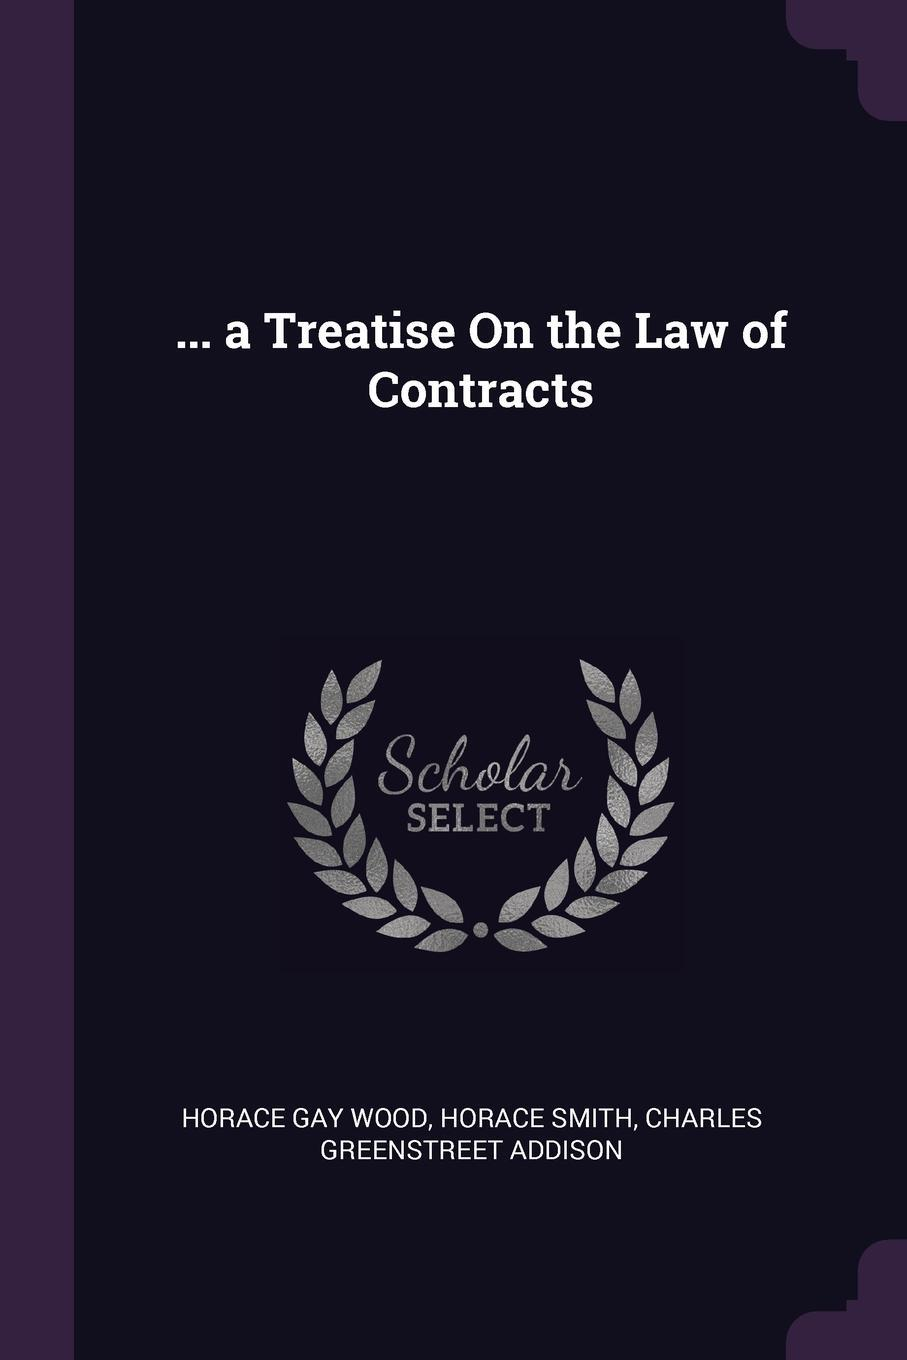 Horace Gay Wood, Horace Smith, Charles Greenstreet Addison. ... a Treatise On the Law of Contracts